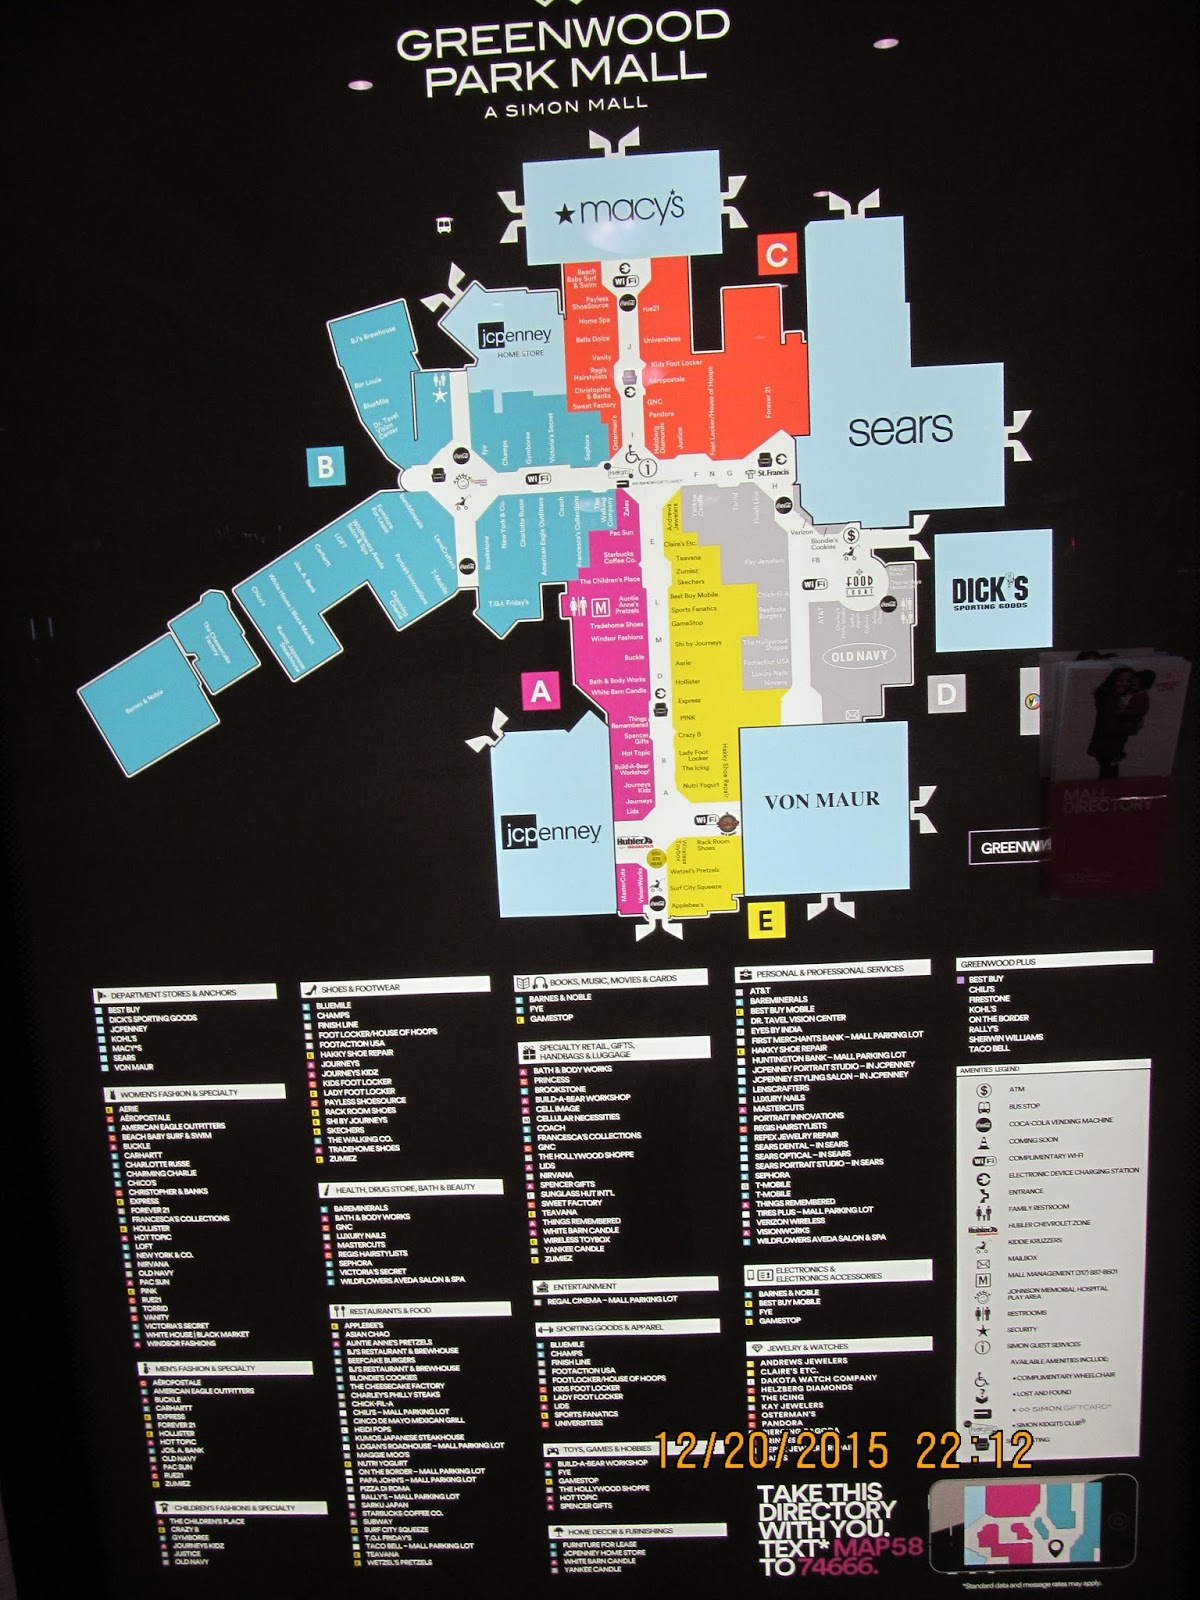 Orland Park Mall Map. Orland Park Mall Map Orland Square Mall Map ...